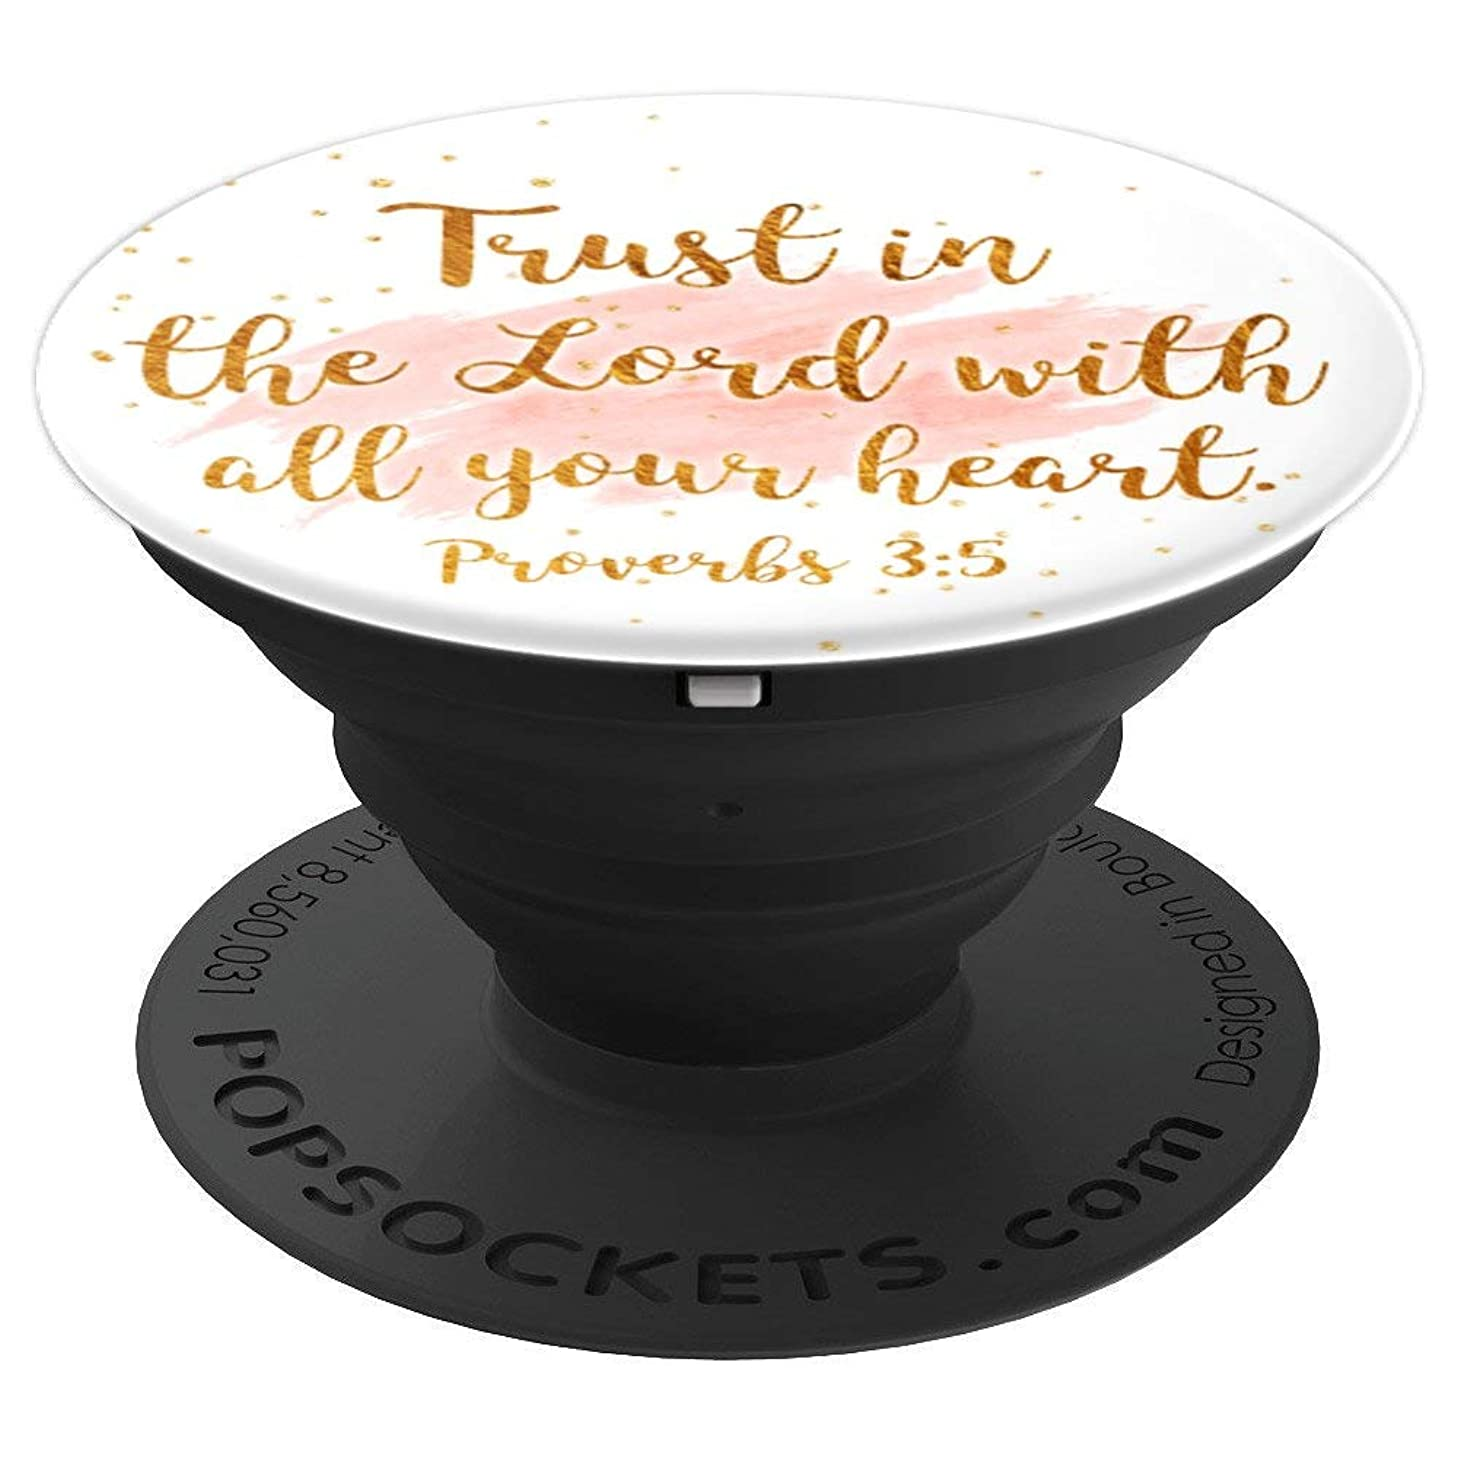 Proverbs 3:5 - Bible Verse Christian Inspiring Quote - PopSockets Grip and Stand for Phones and Tablets efpdi128639096